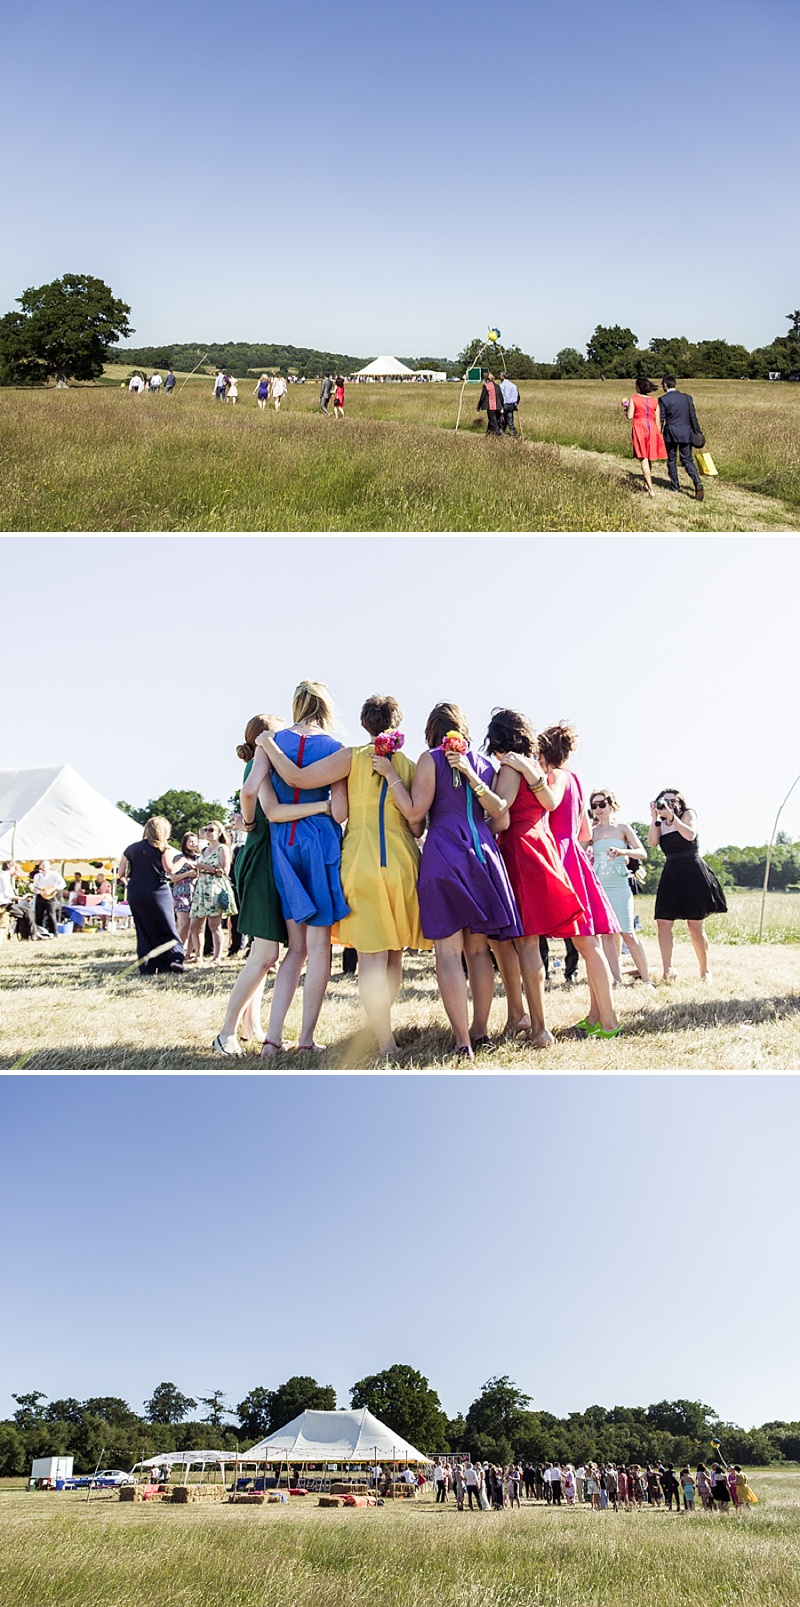 Marquee Wedding In East Sussex, Bride In Self-Designed Gown Made By Angela Webber, With Gold Matthew Williamson Belt, Bright Coloured 50s Style Bridesmaids Dresses, Images by Andrew Marshall_0009